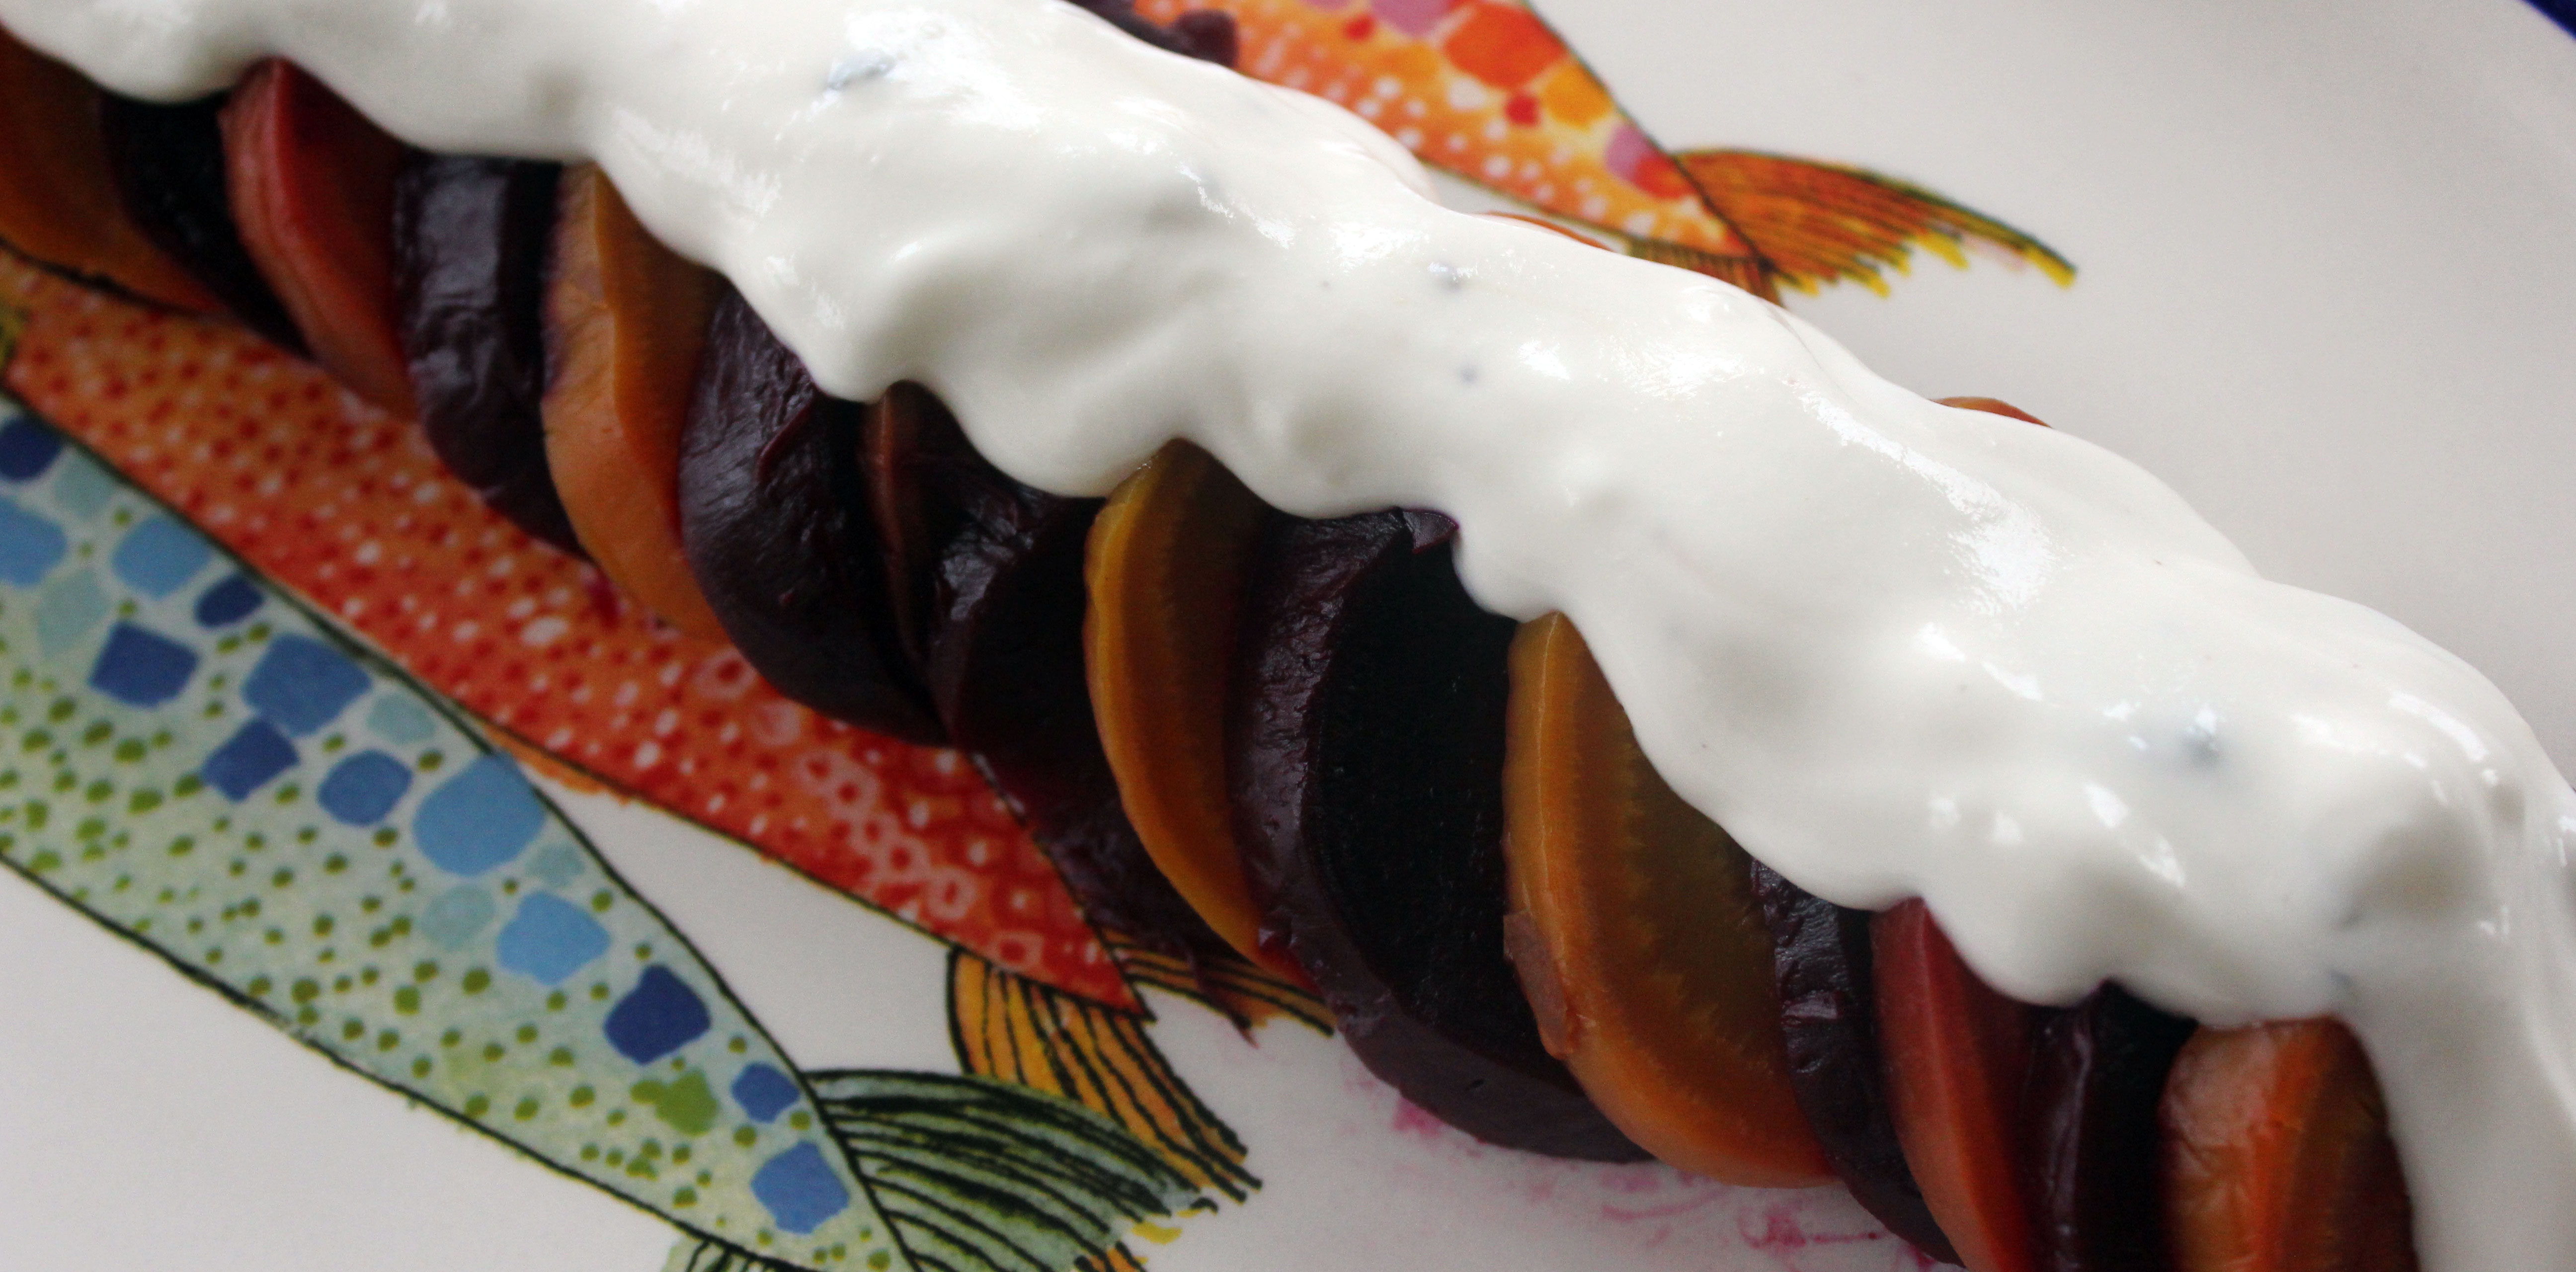 TBT Recipe: Smoked Beets with Charred Pecans and Buttermilk-Goat Cheese Crema